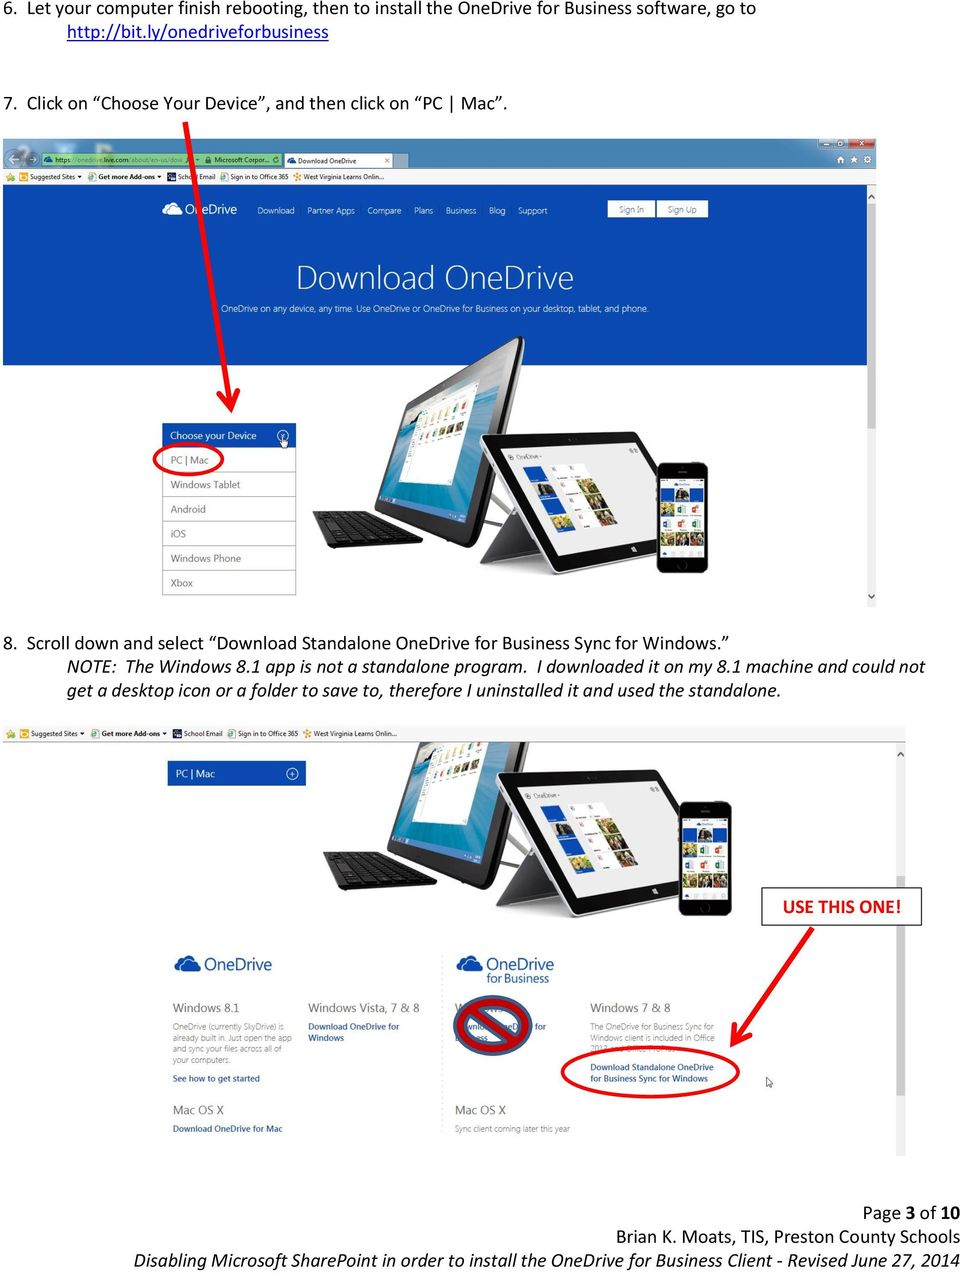 Disabling Microsoft SharePoint in order to install the